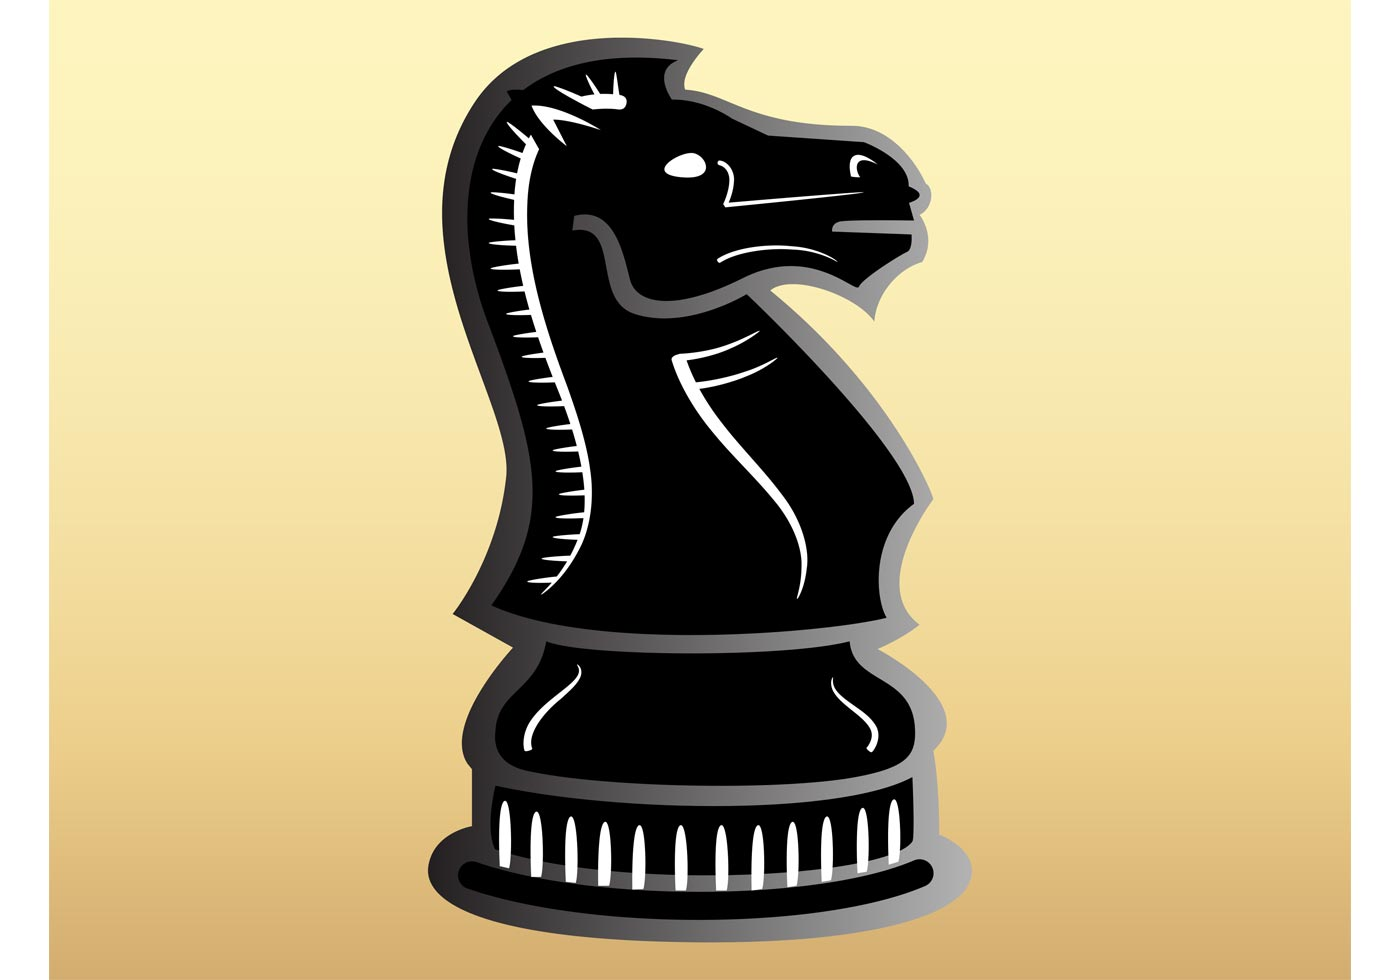 Chess Piece - Download Free Vector Art, Stock Graphics ...